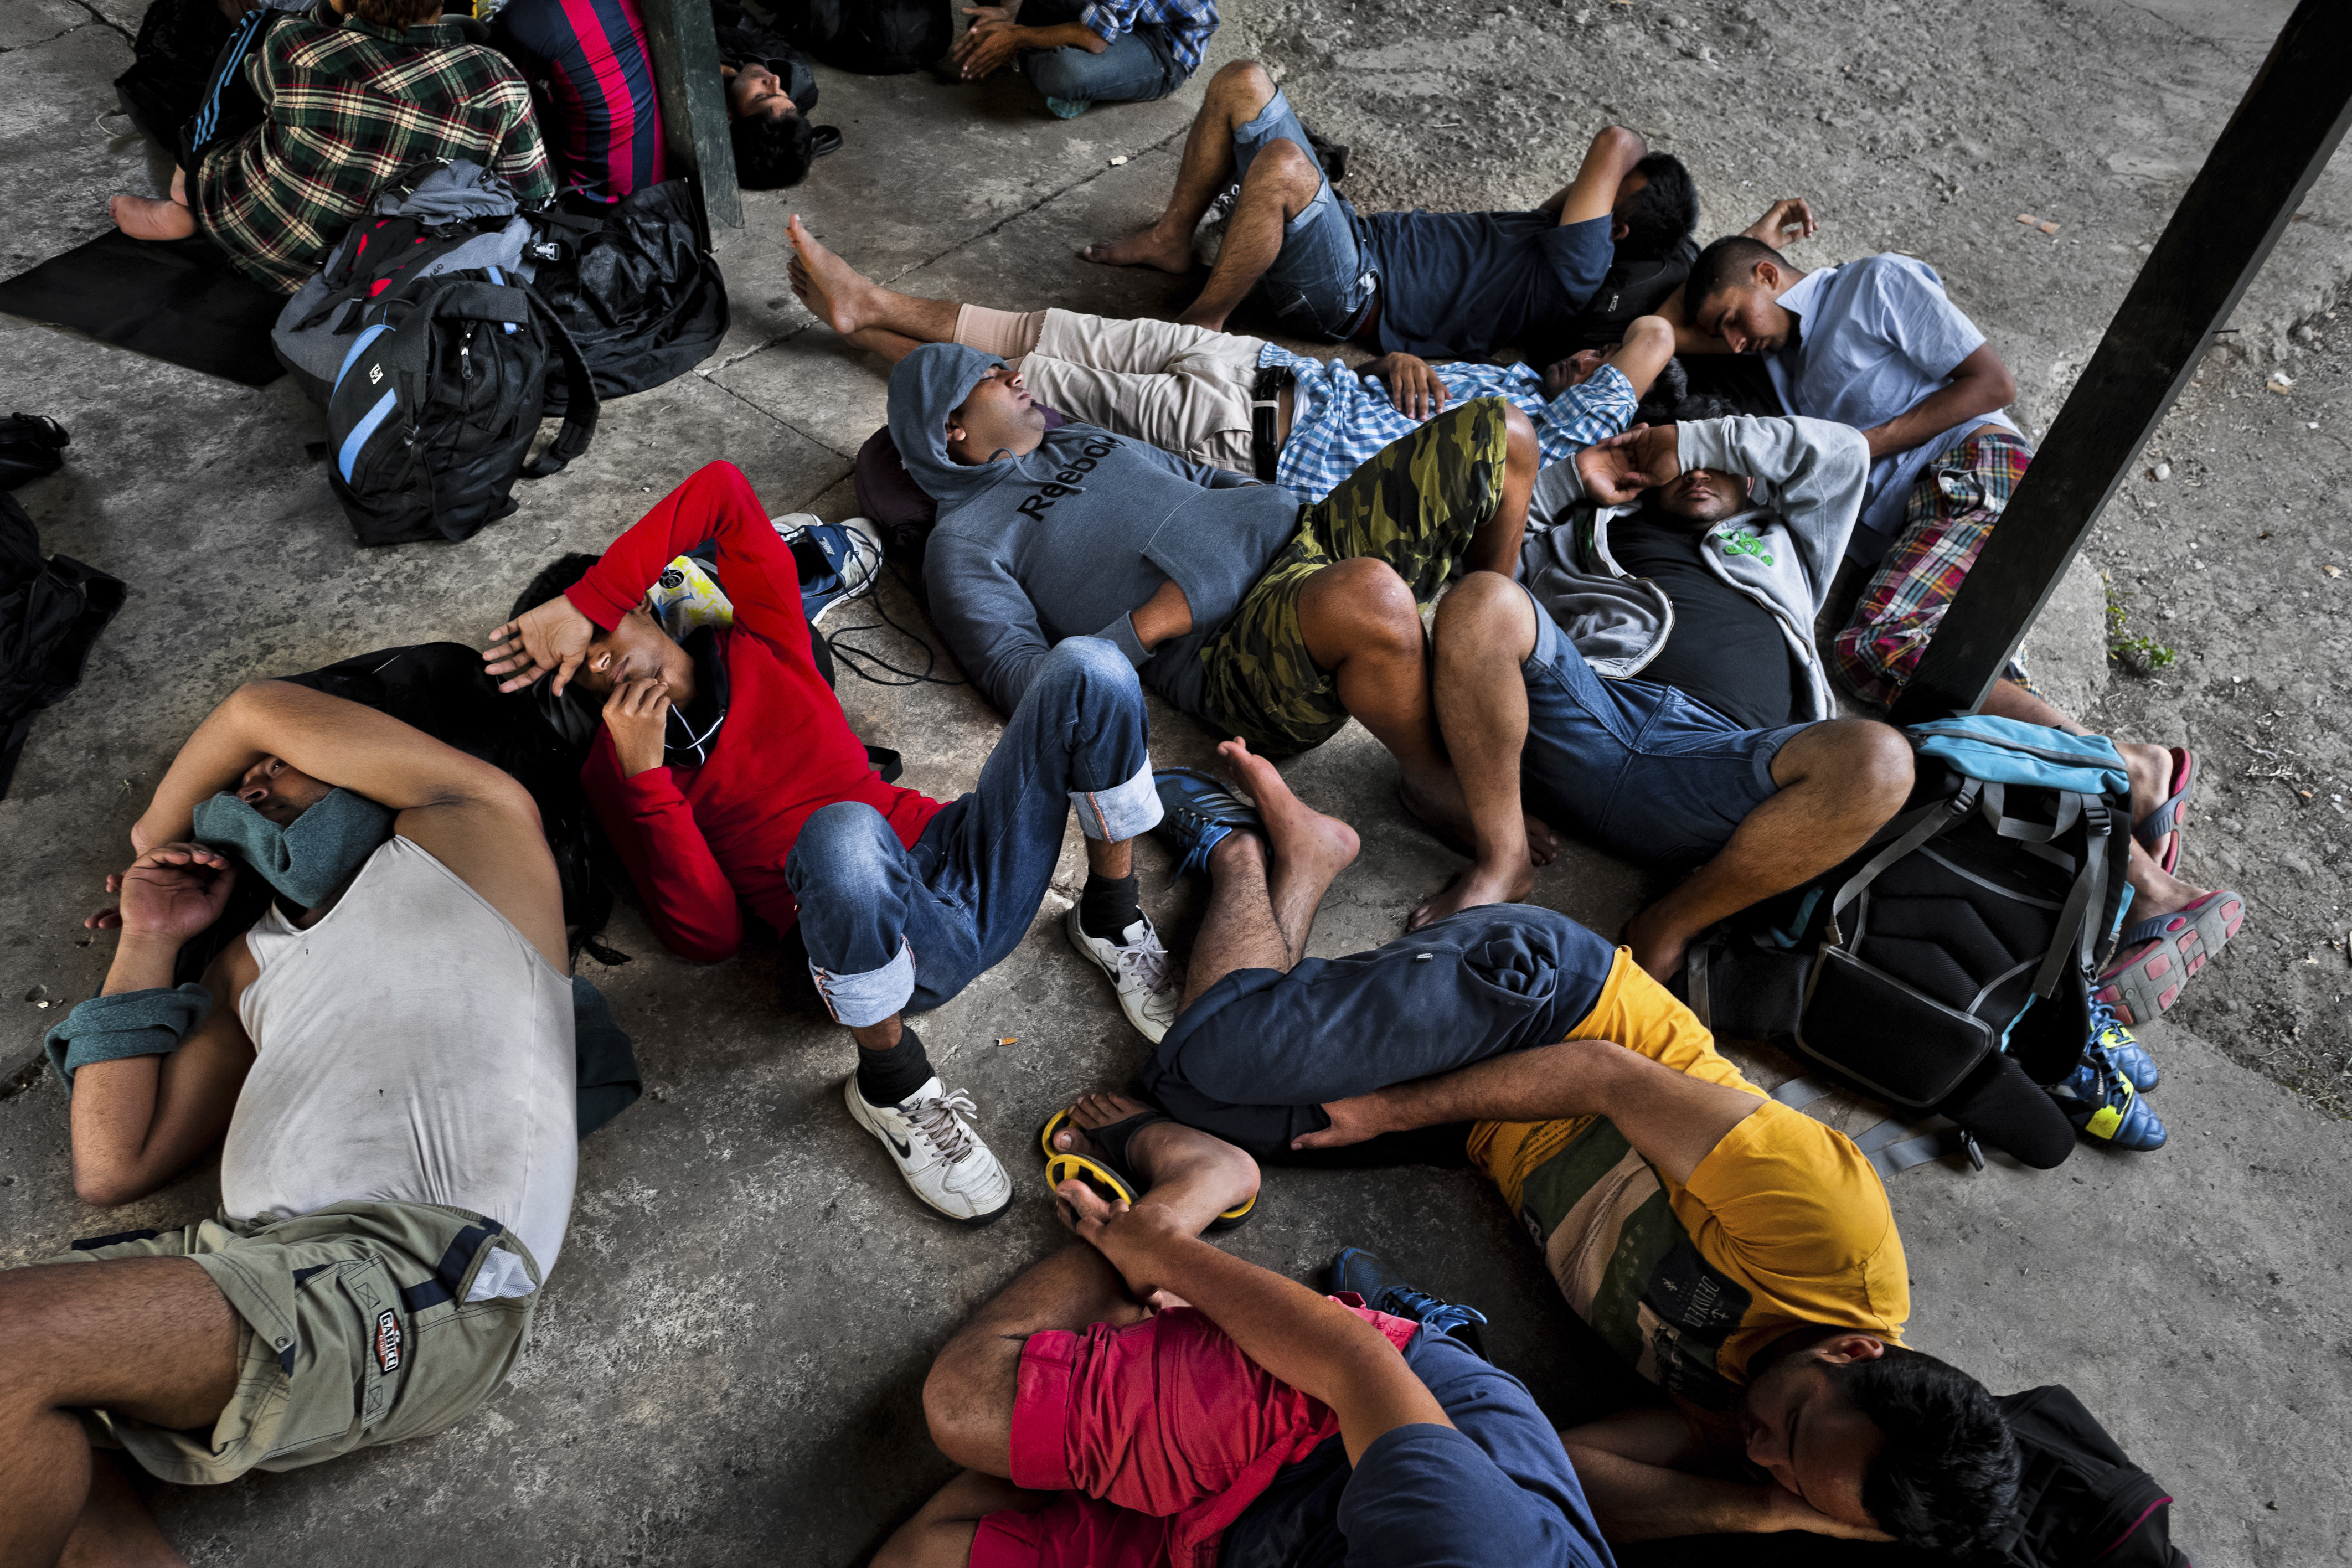 Nepalese immigrants, heading to the southern U.S. border, lie exhausted on the ground in the border checkpoint after crossing the jungle of Darién gap on January 28, 2015 in Darien, Panama.